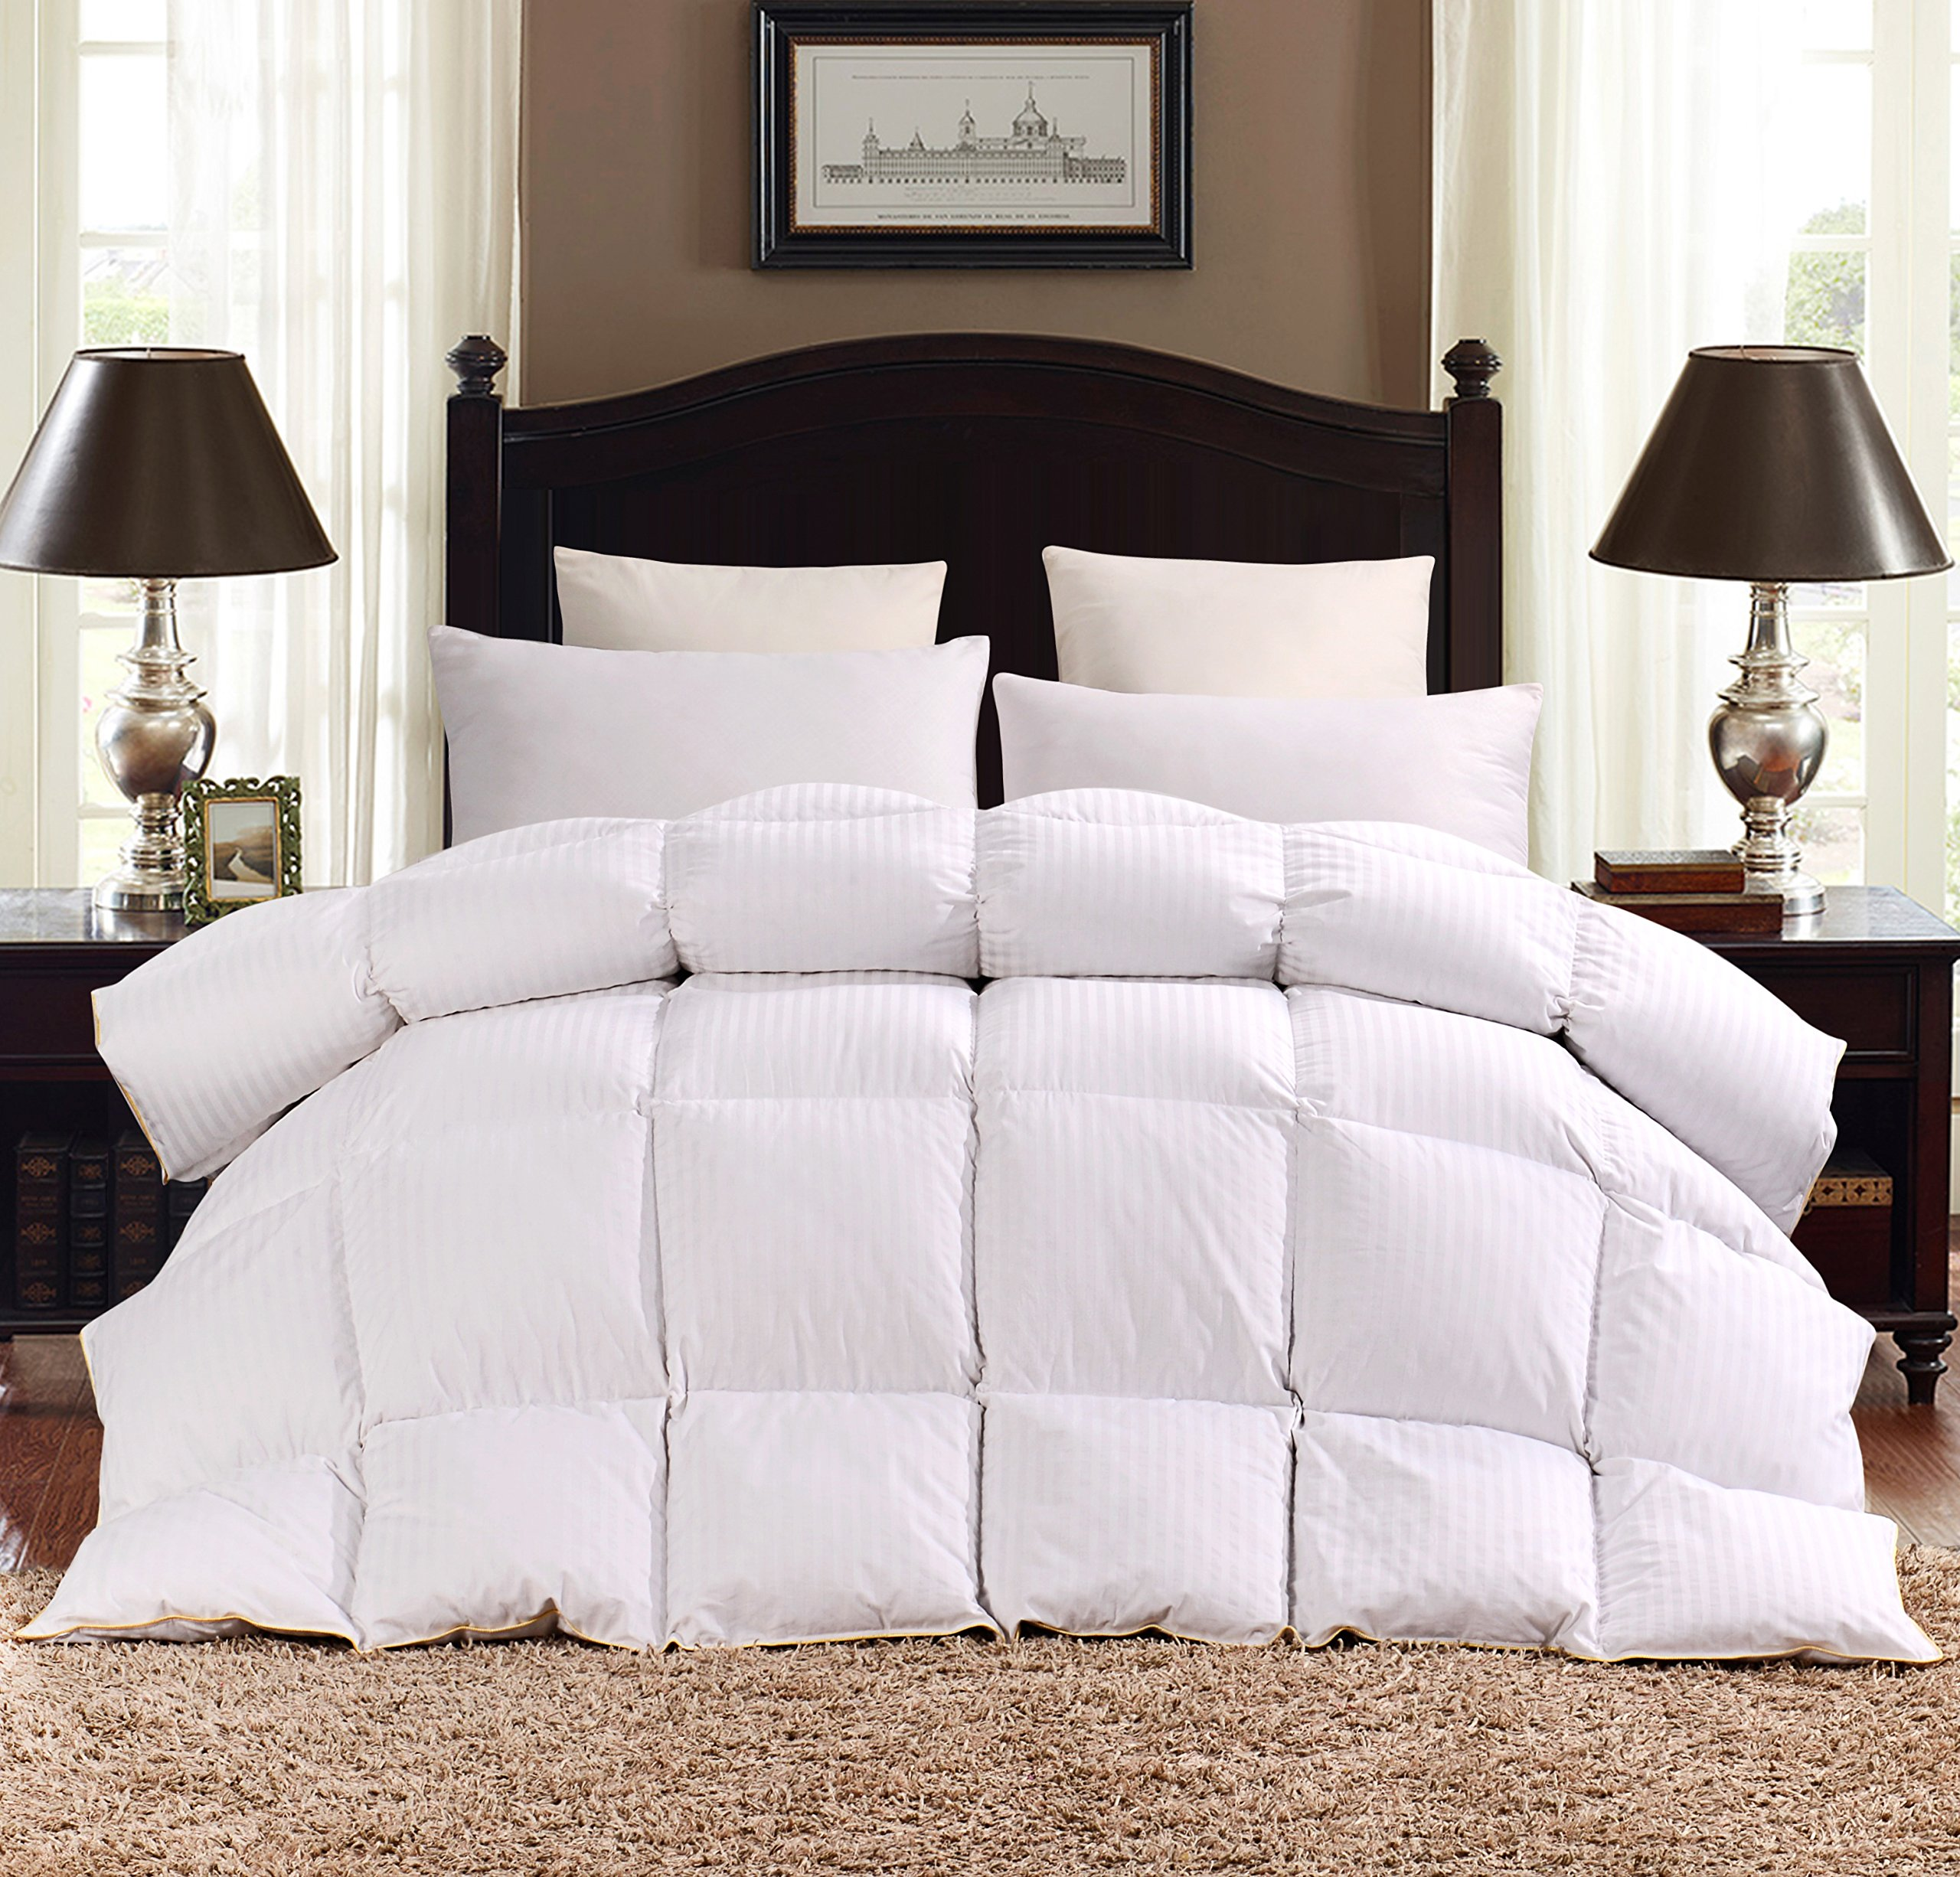 today home bedding lightweight free insert st james shipping white overstock product duvet down comforter goose bath king